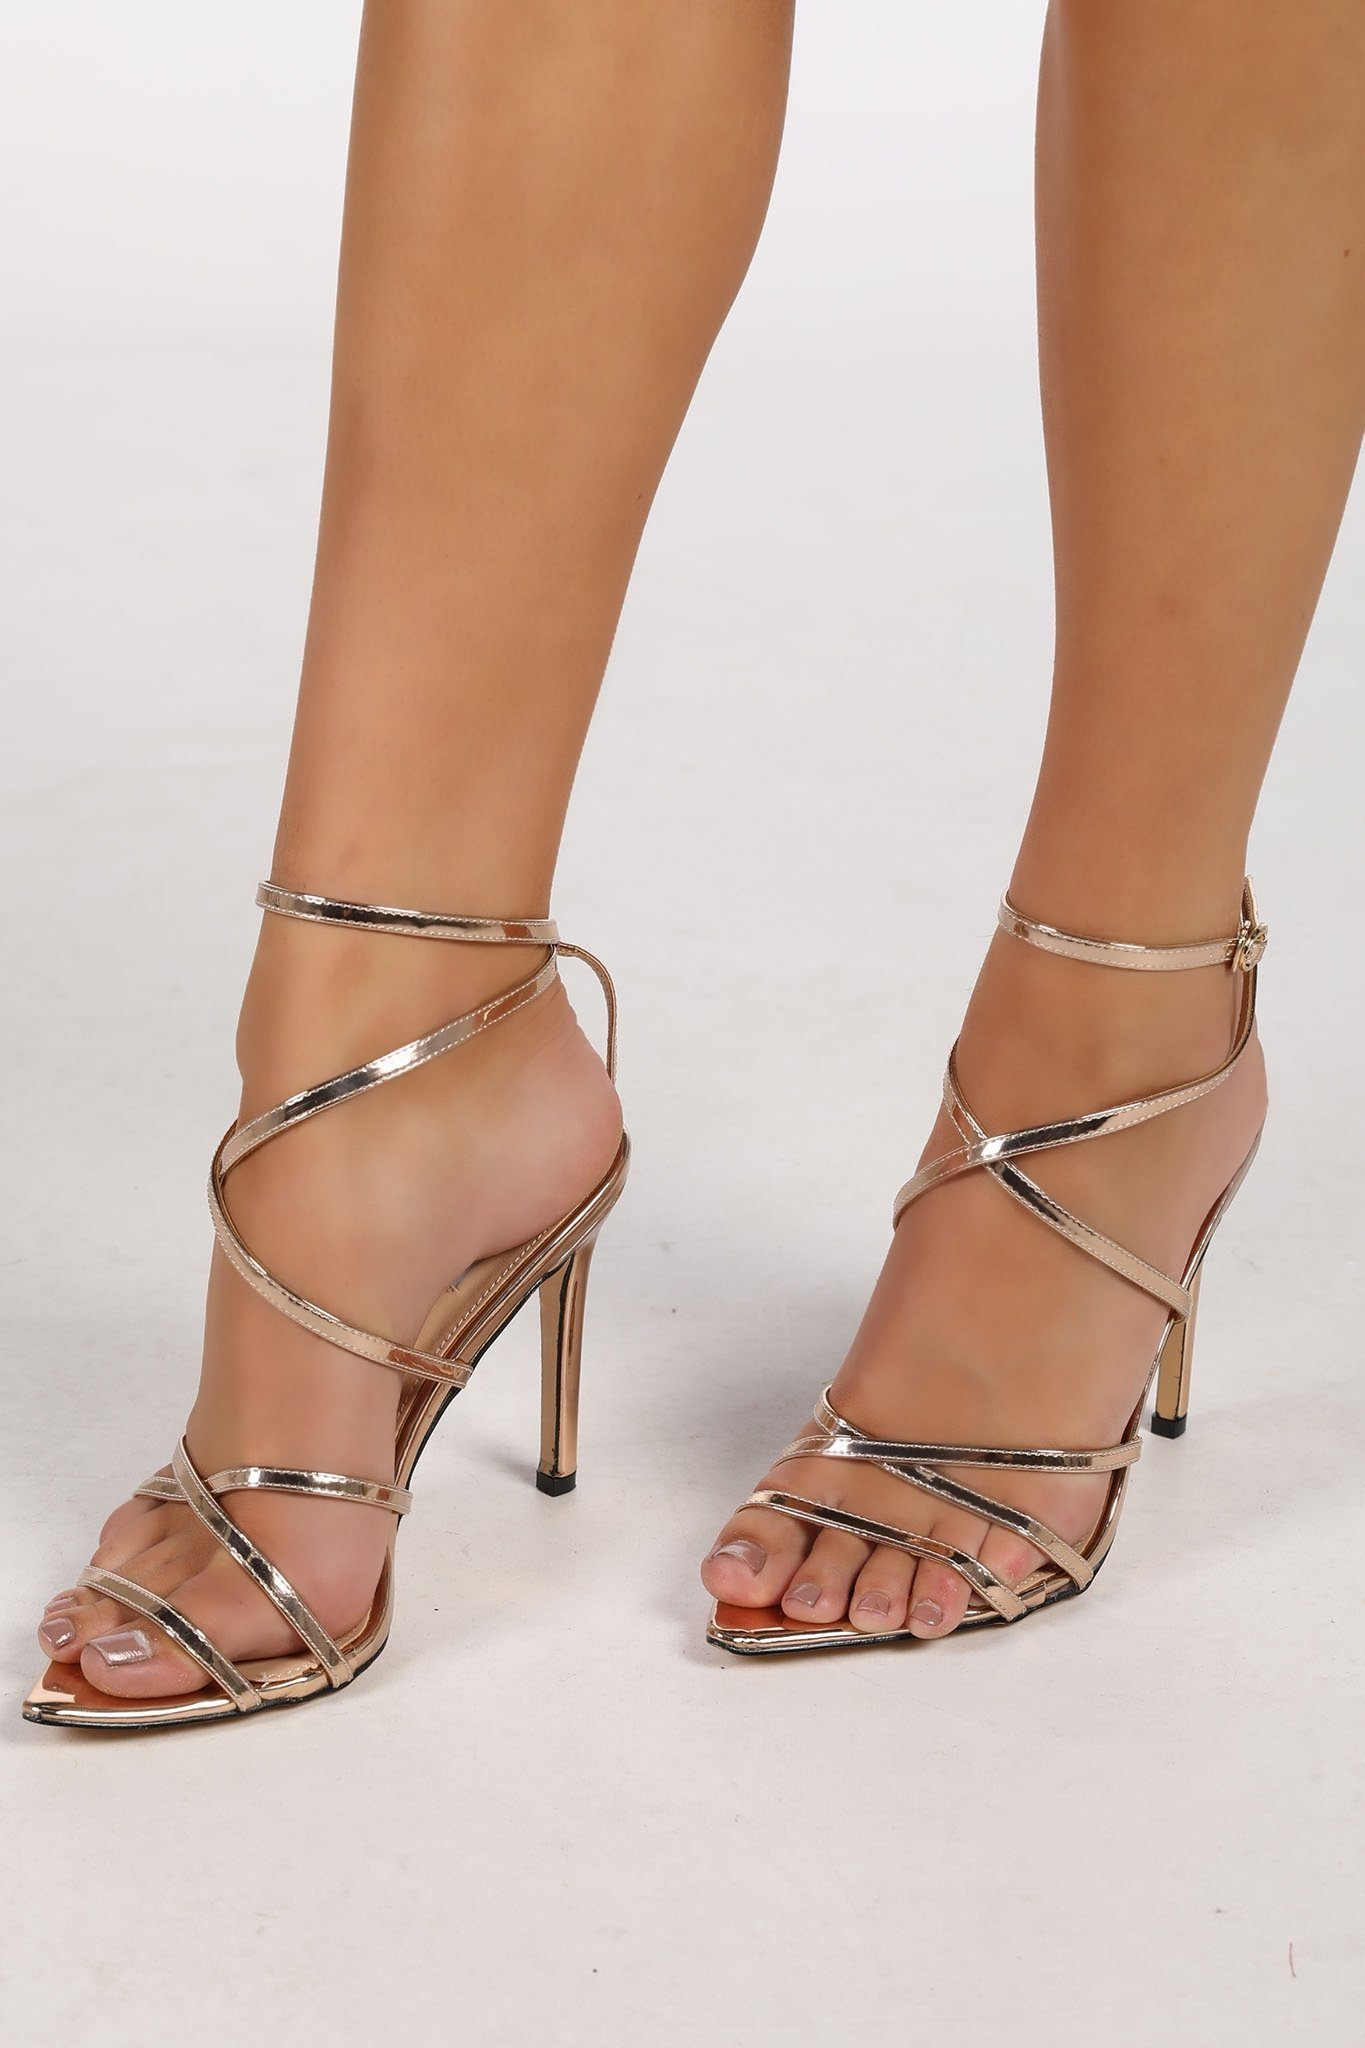 Gold Strappy High Heel Sandals